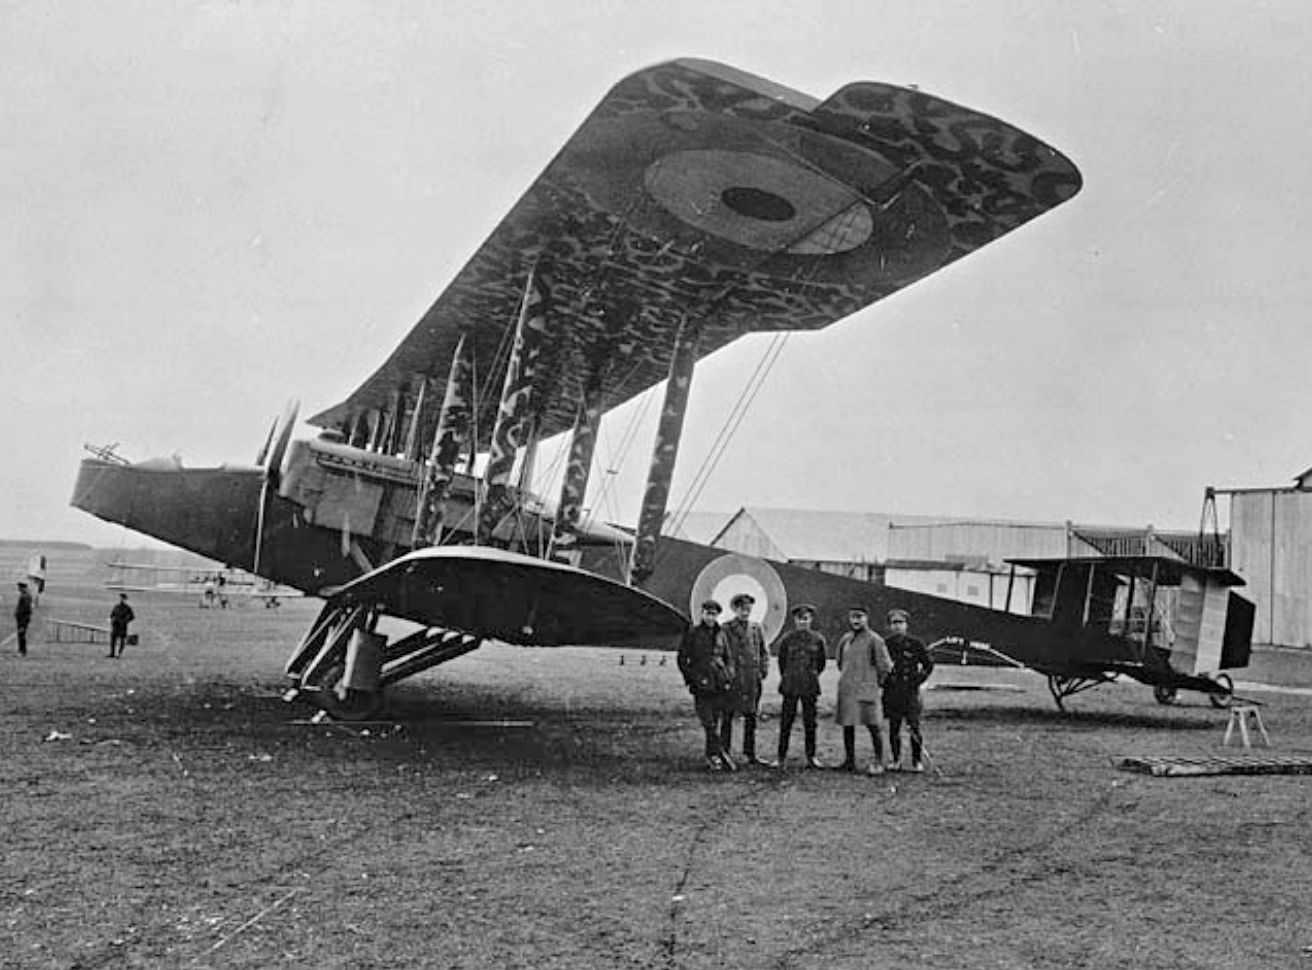 Handley_Page_0_100_aircraft.jpg